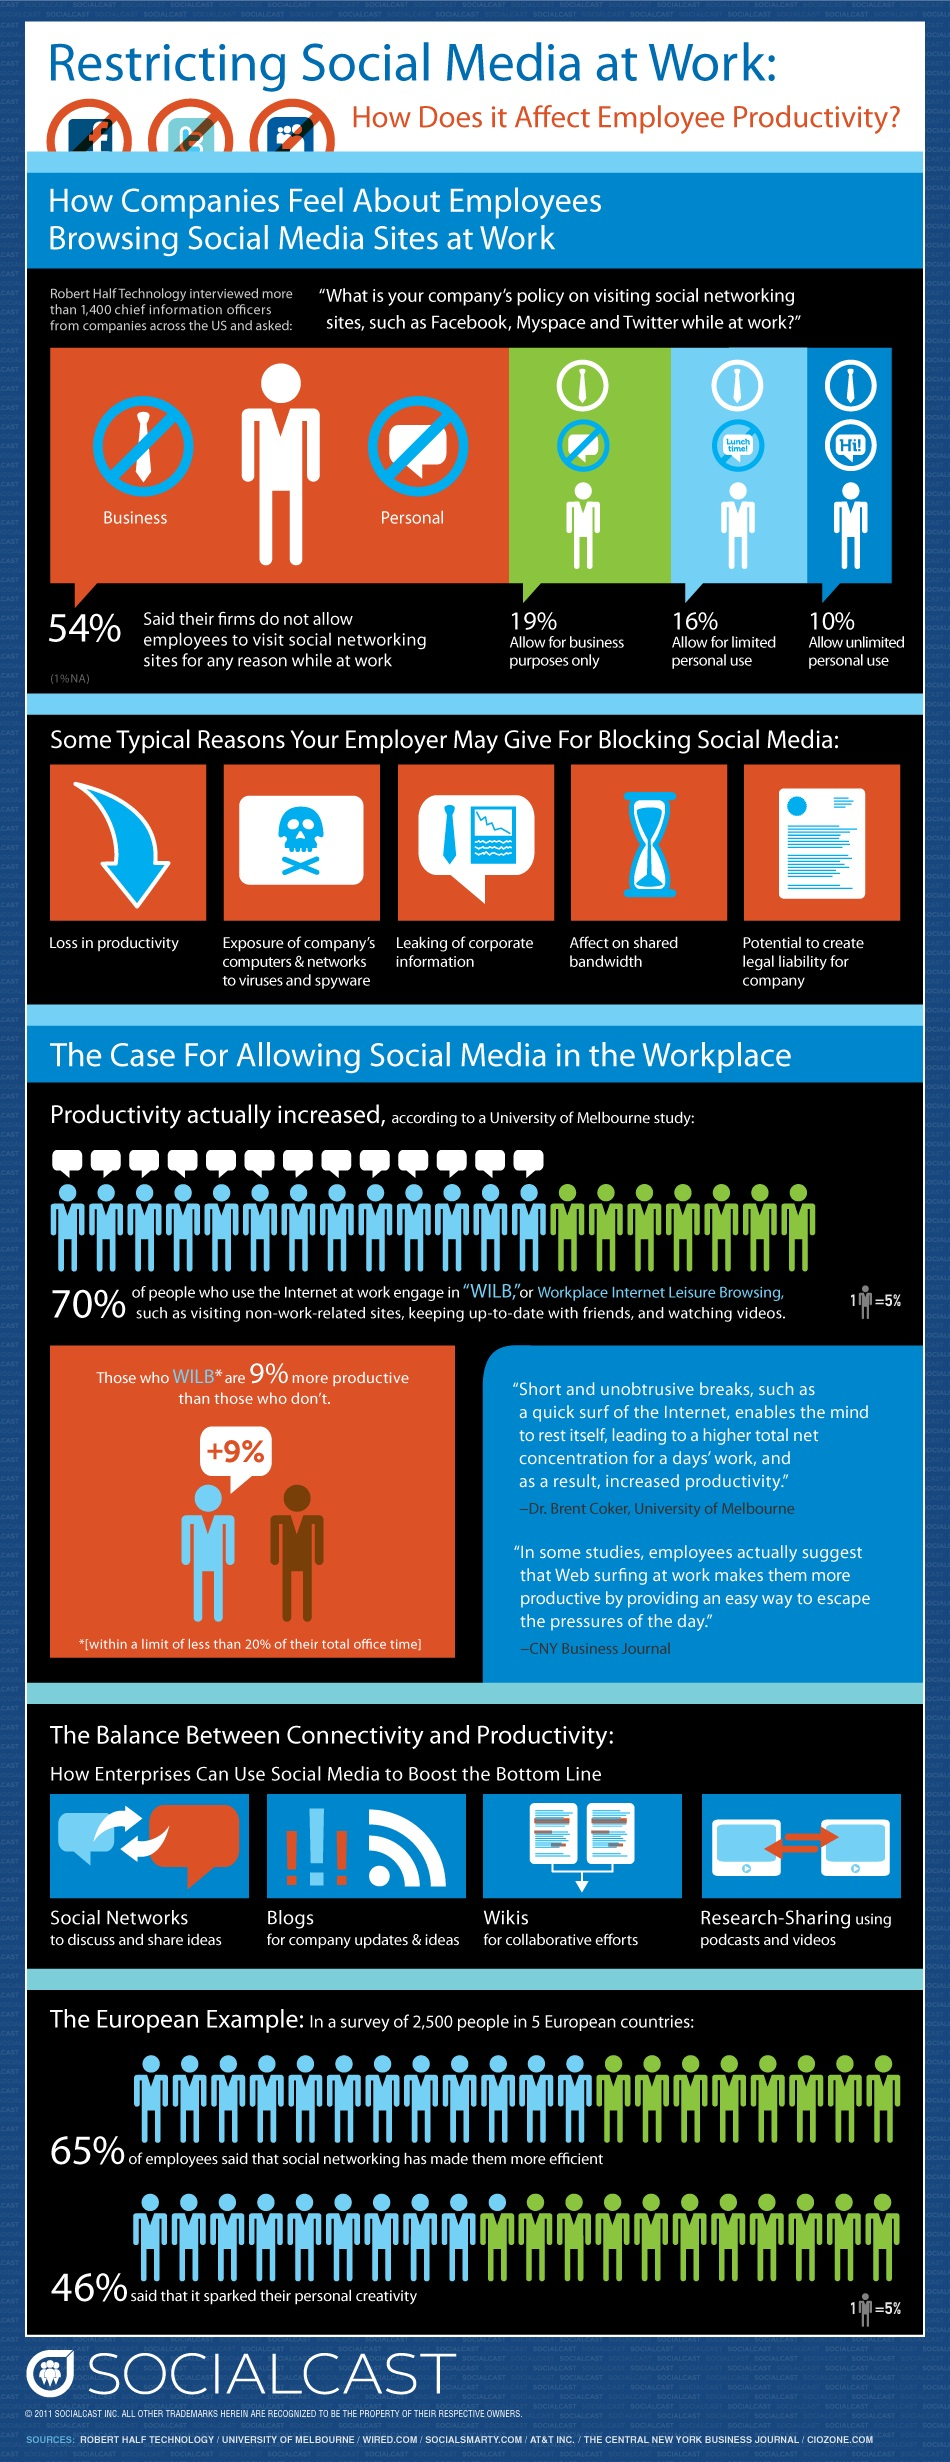 Social Media at Work Infographic